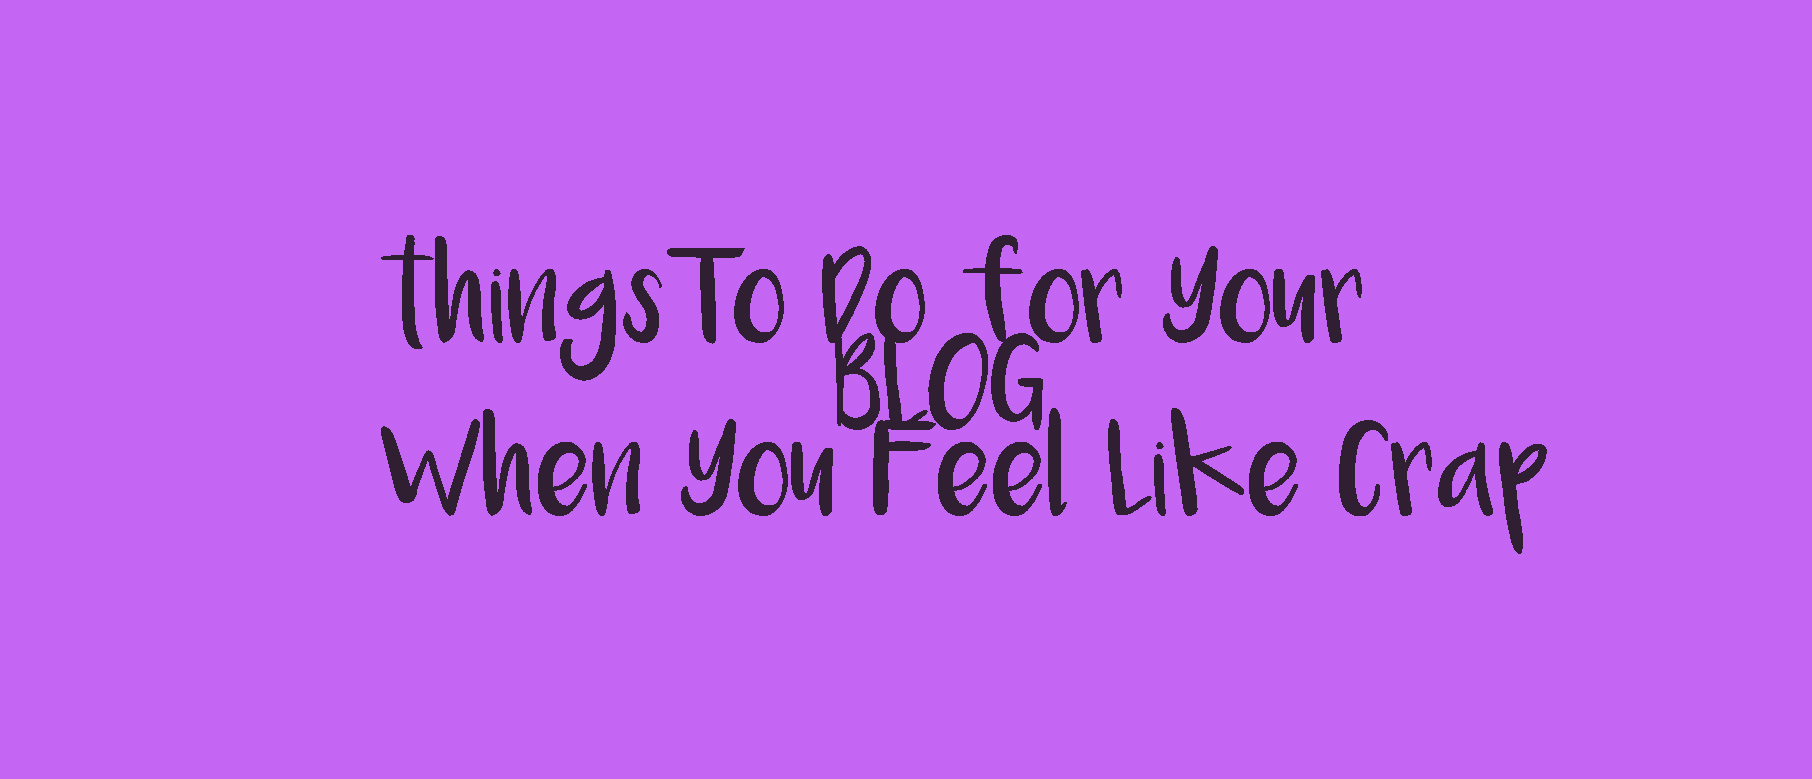 Things You Can Do for Your Blog When You Feel Like Crap